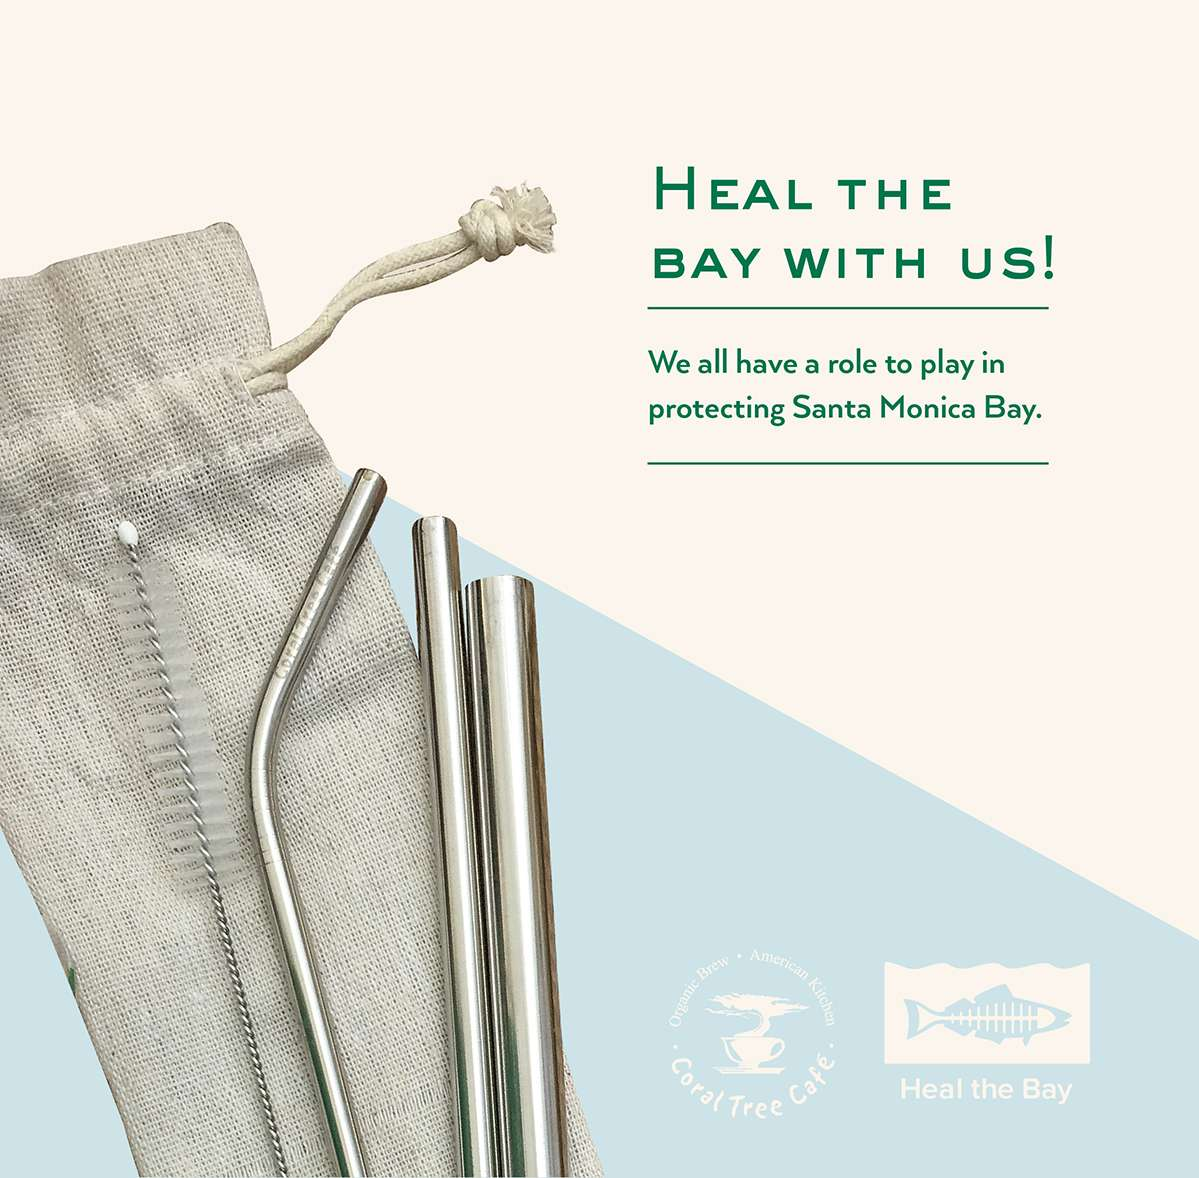 Heal the bay with us